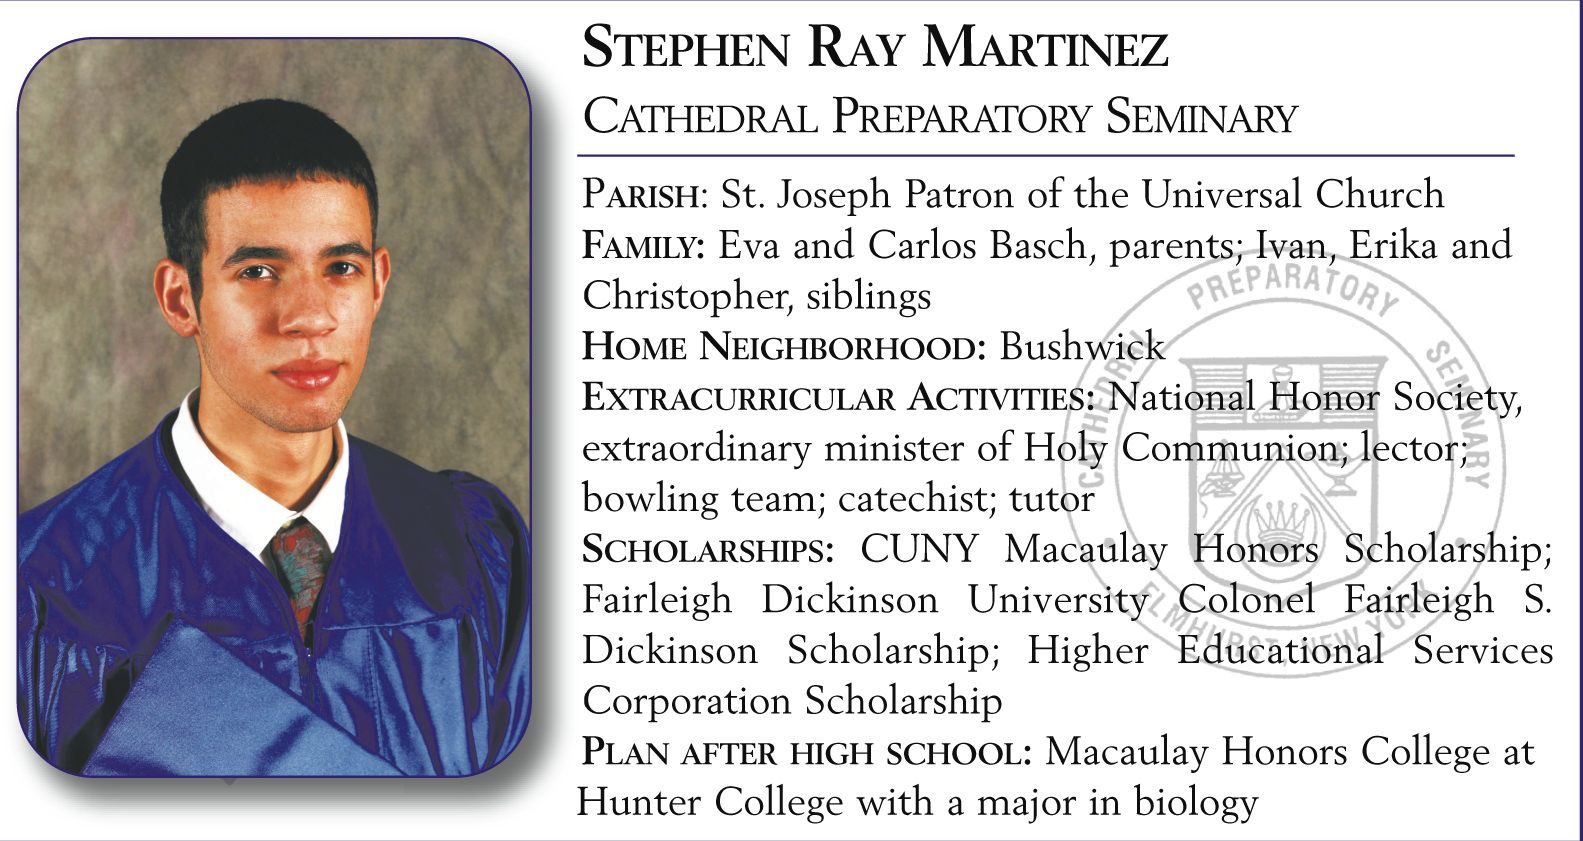 Stephen Ray Martinez, Cathedral Preparatory Seminary